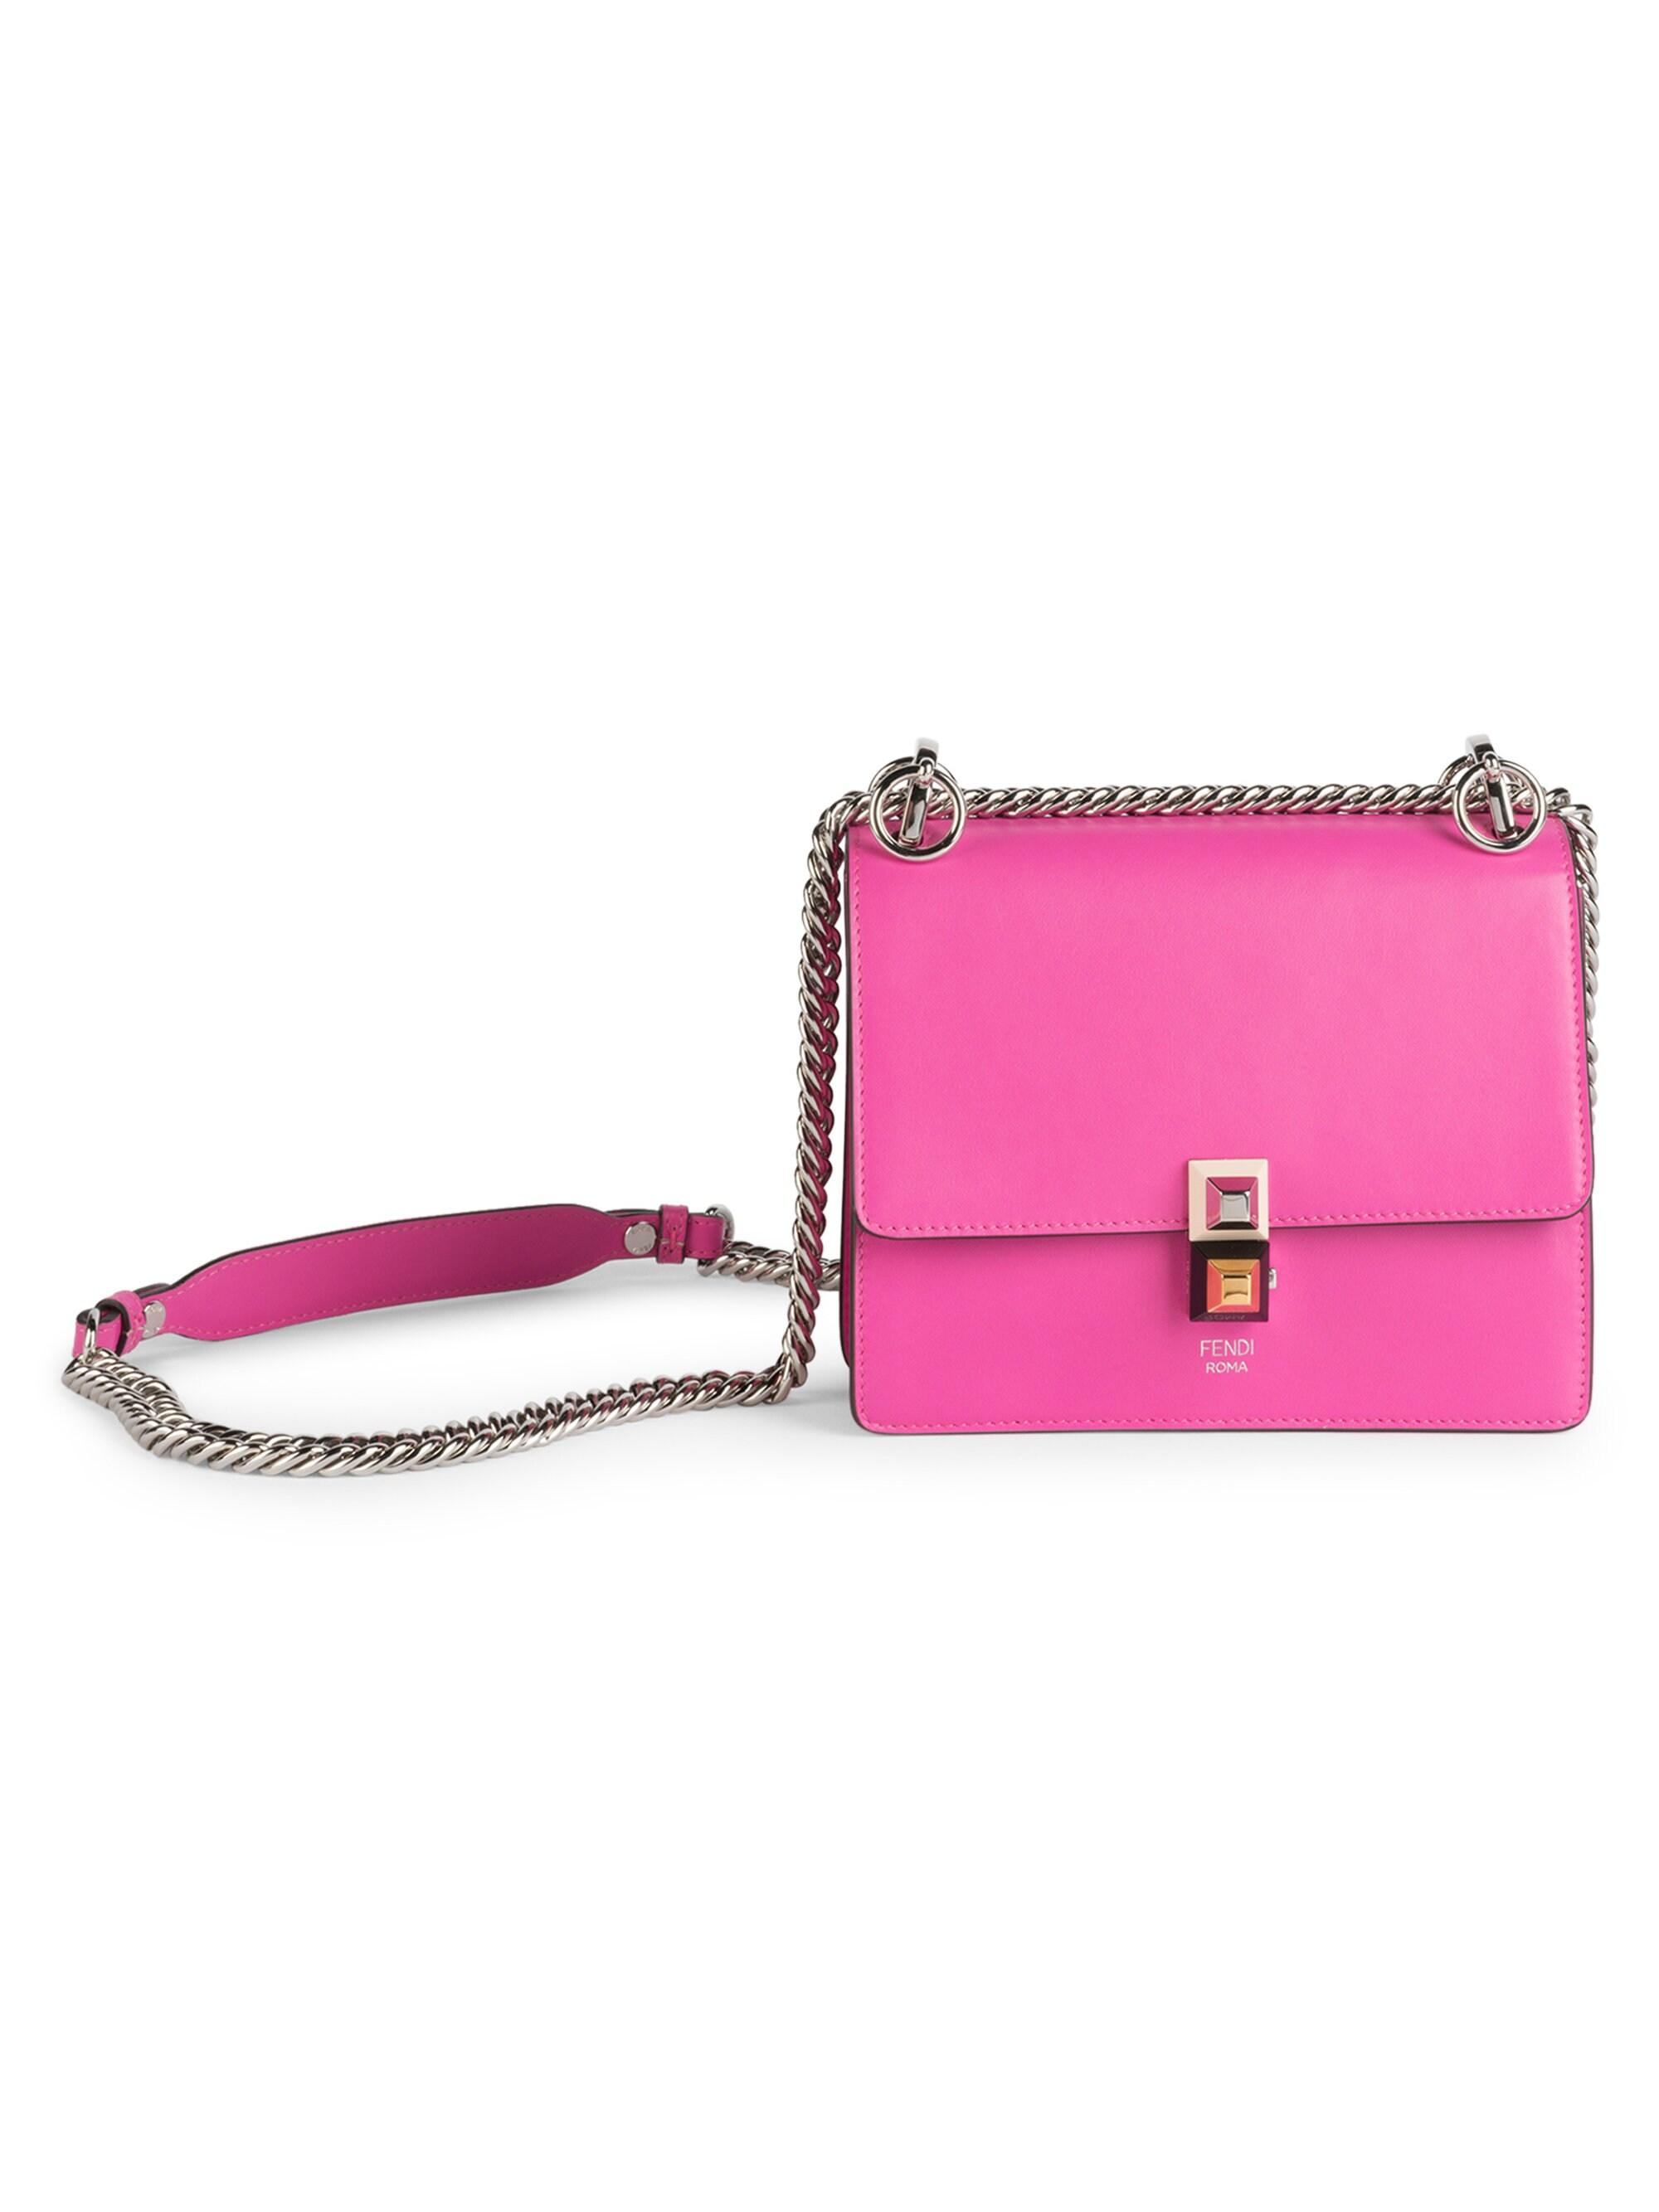 618640c5 Women's Mini Kan Bag